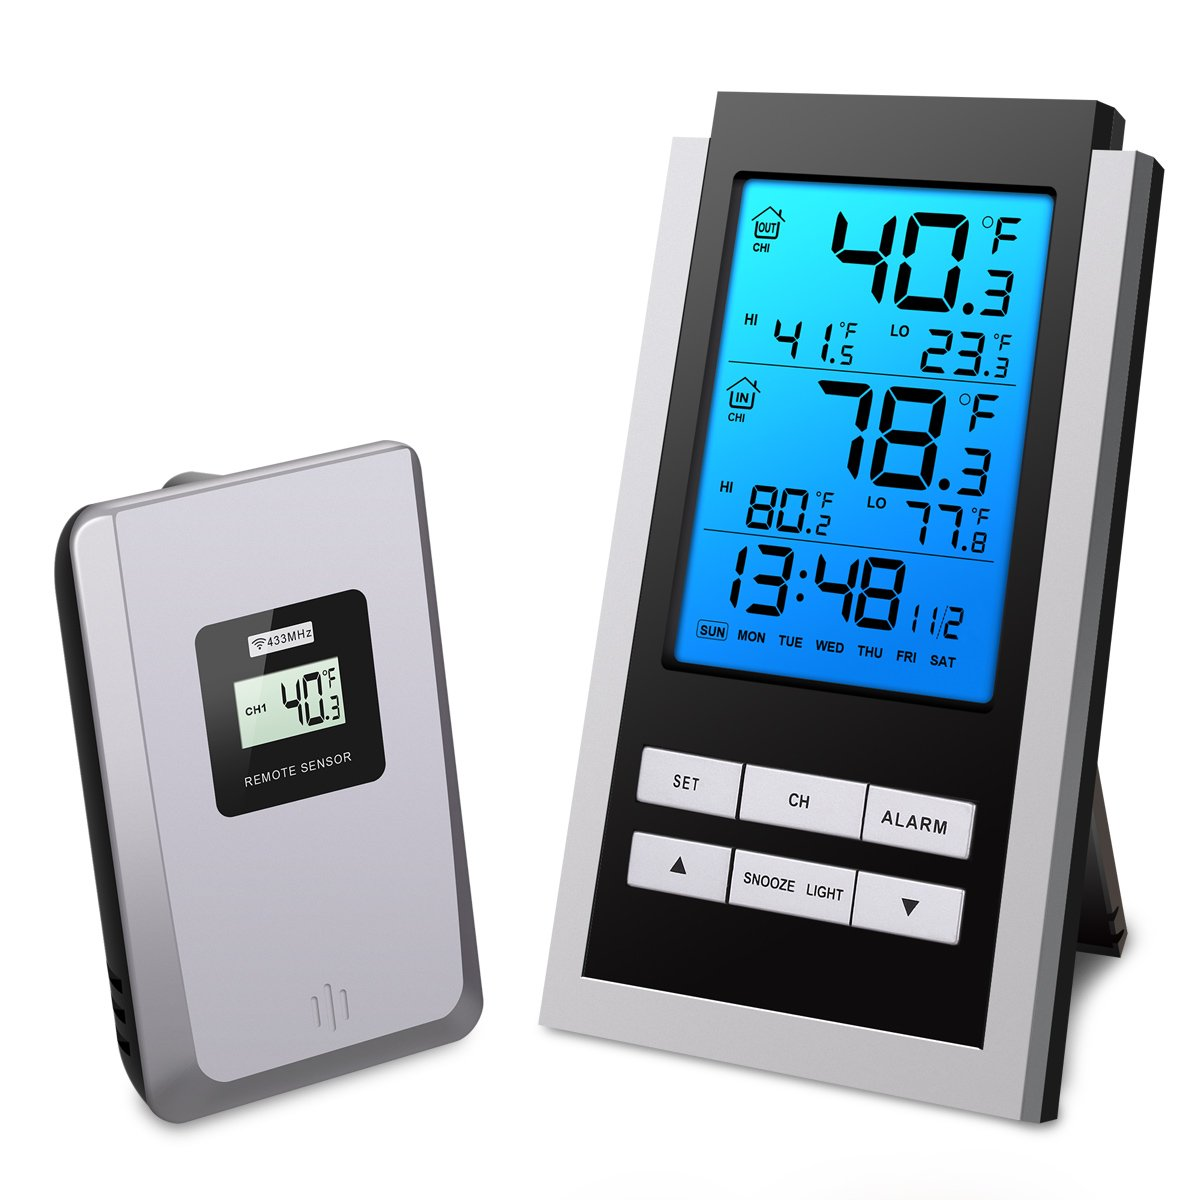 ORIA Indoor Thermometer, with Alarm Clock and Snooze Function, Digital Wireless Indoor/Outdoor Temperature Monitor, Remote Thermometer with Blue Backlight, Battery Not Included 4335431236